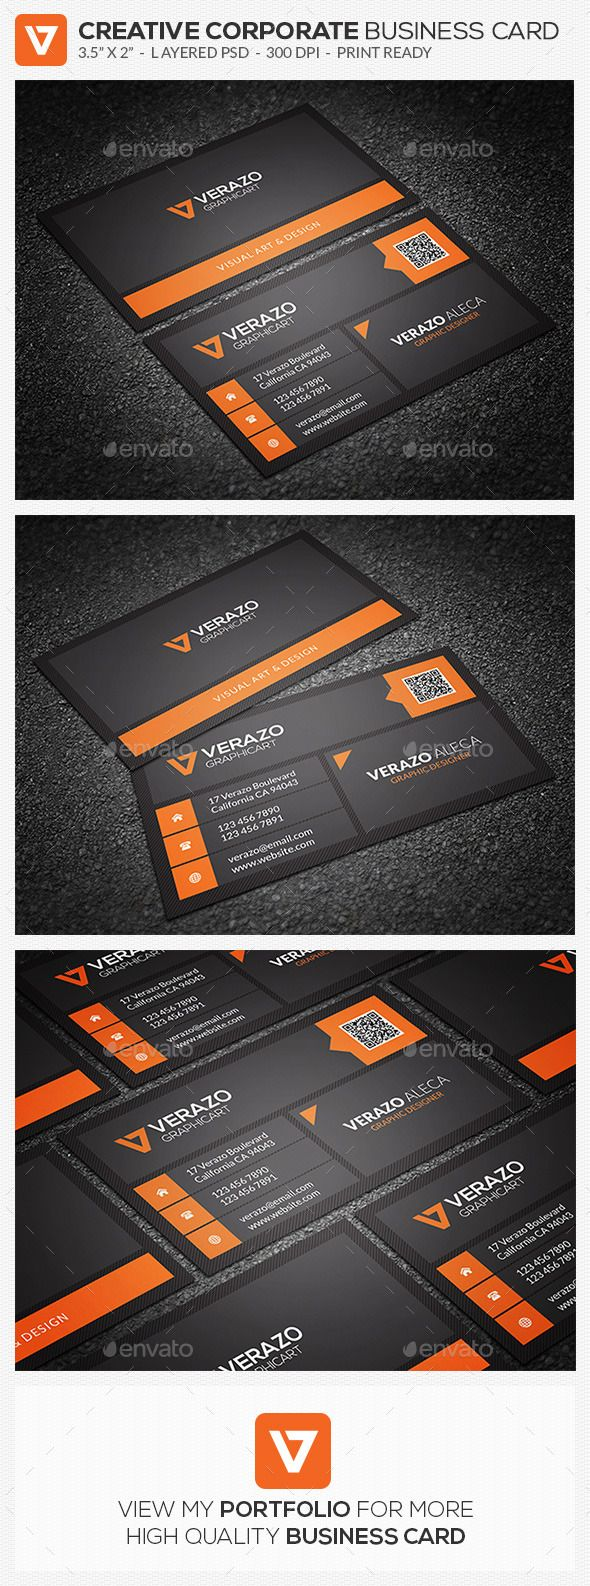 Creative Metro Style Business Card Template #design Download: http://graphicriver.net/item/creative-metro-style-business-card-74/10309686?ref=ksioks